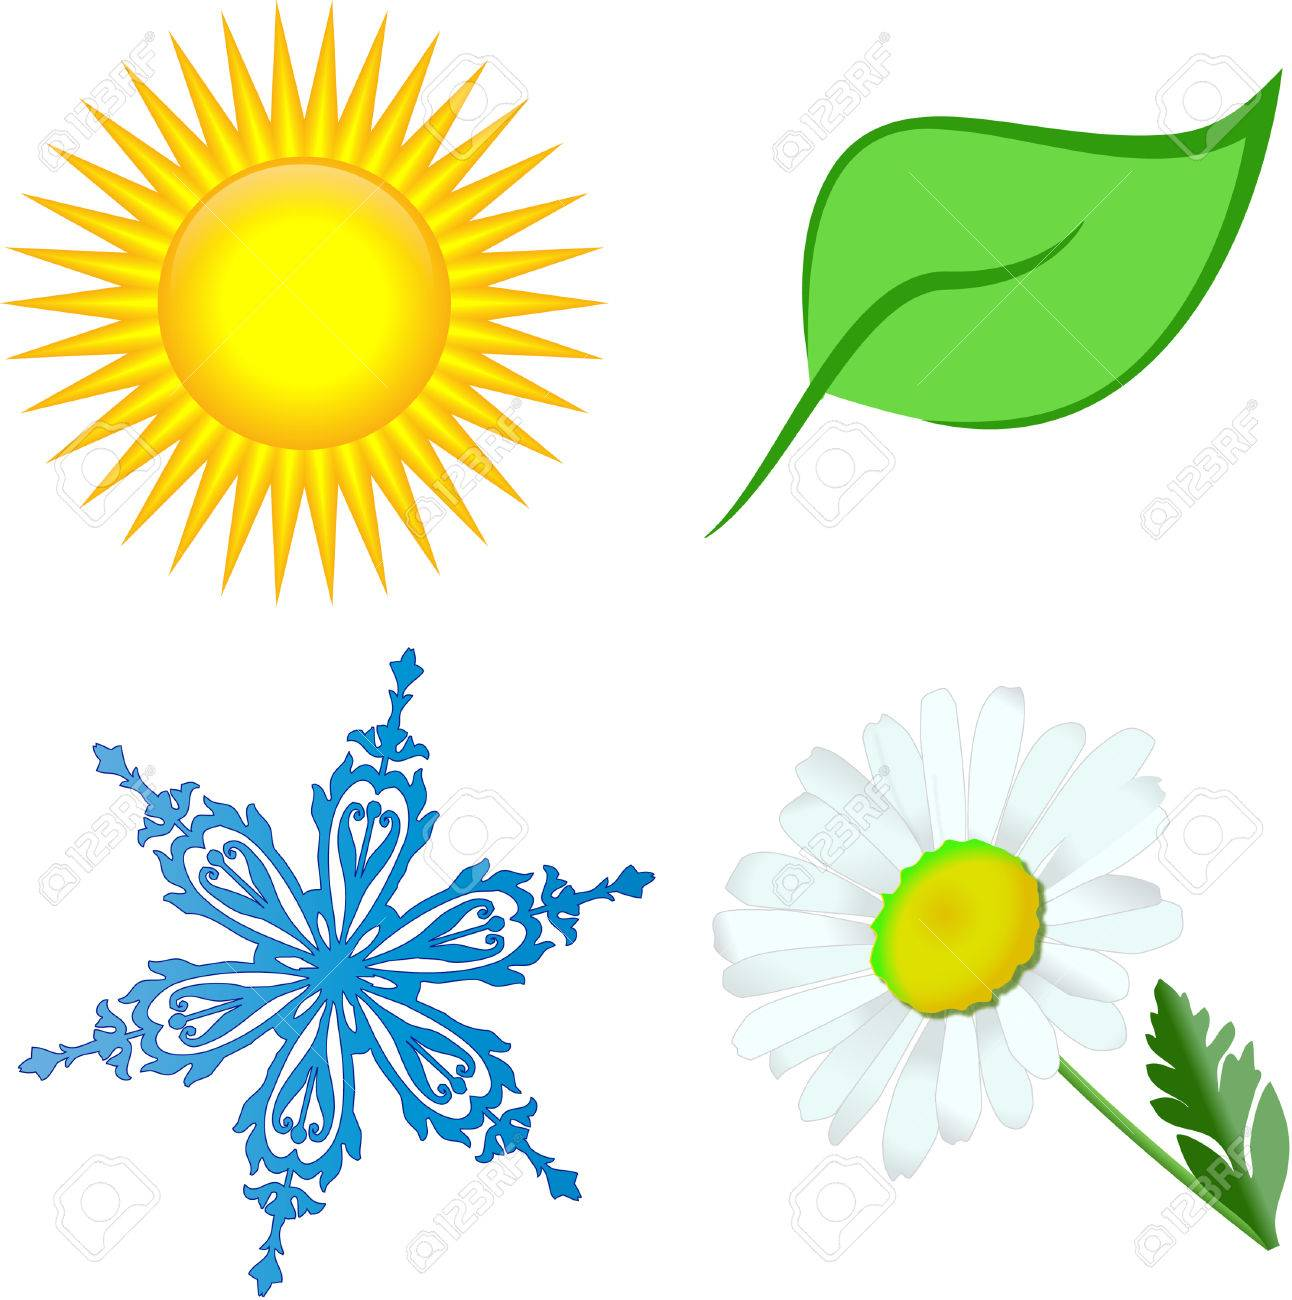 Sun Leaf Snow Flower Royalty Free Cliparts, Vectors, And Stock ...